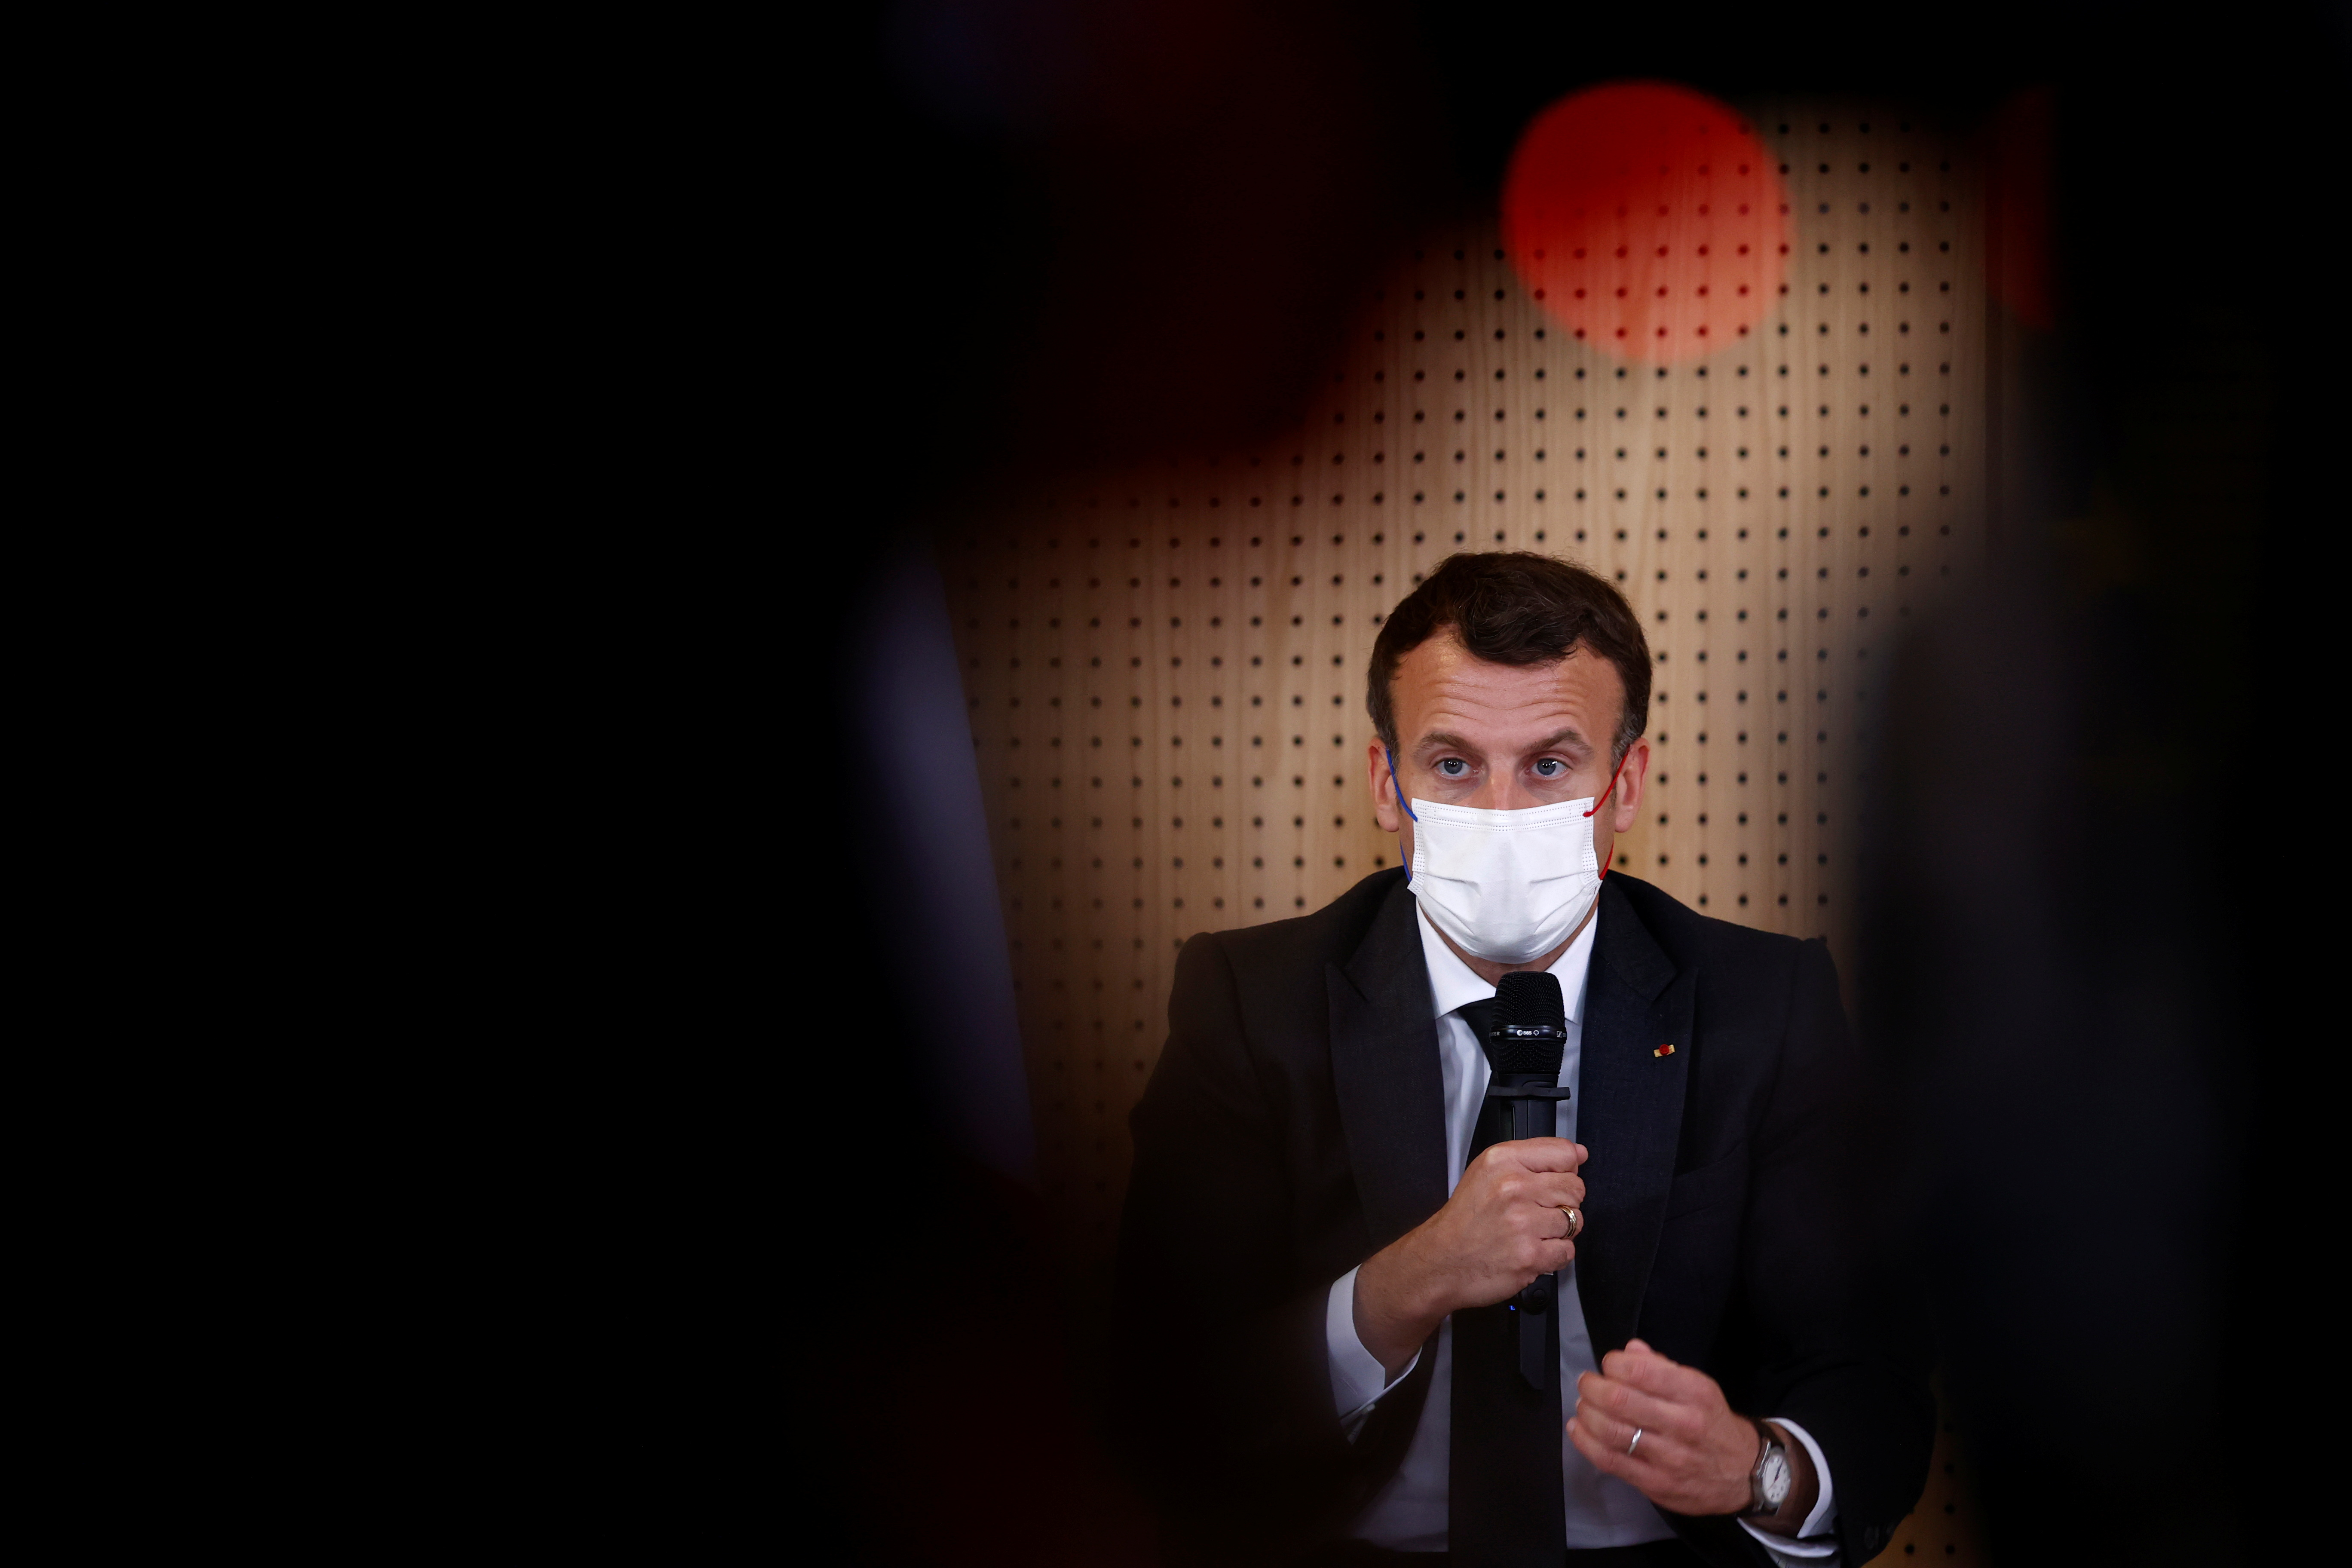 French President Emmanuel Macron, wearing a protective face mask, talks during a meeting with medical staff members during a visit in a child psychiatry department at Reims hospital. April 14, 2021.  REUTERS/Christian Hartmann/Pool